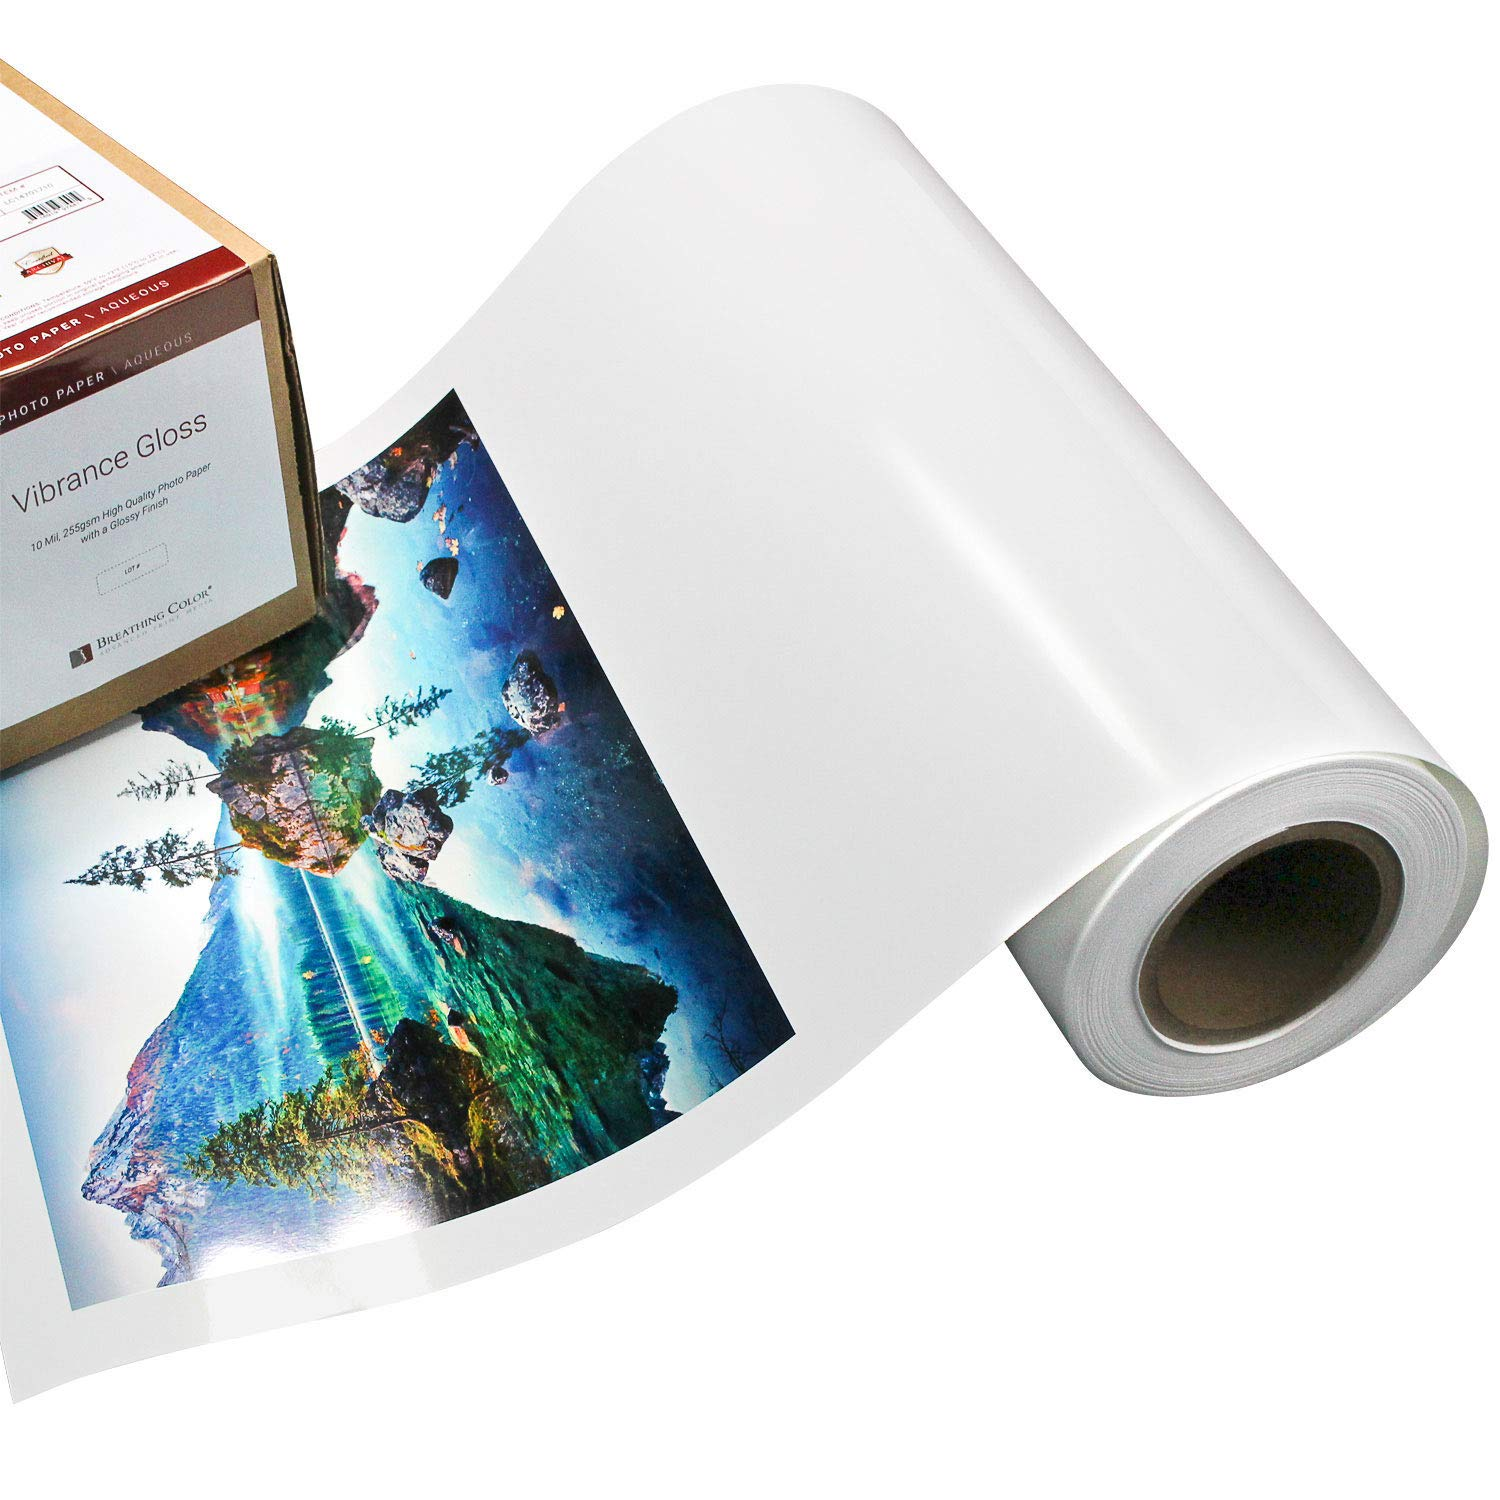 Vibrance Gloss Photo Printer Paper 10 mil 255 gsm Glossy Finish Premium Photo Paper Roll 24 inches x 100 feet Works with All Inkjet Printers Including Professional Makes and Models